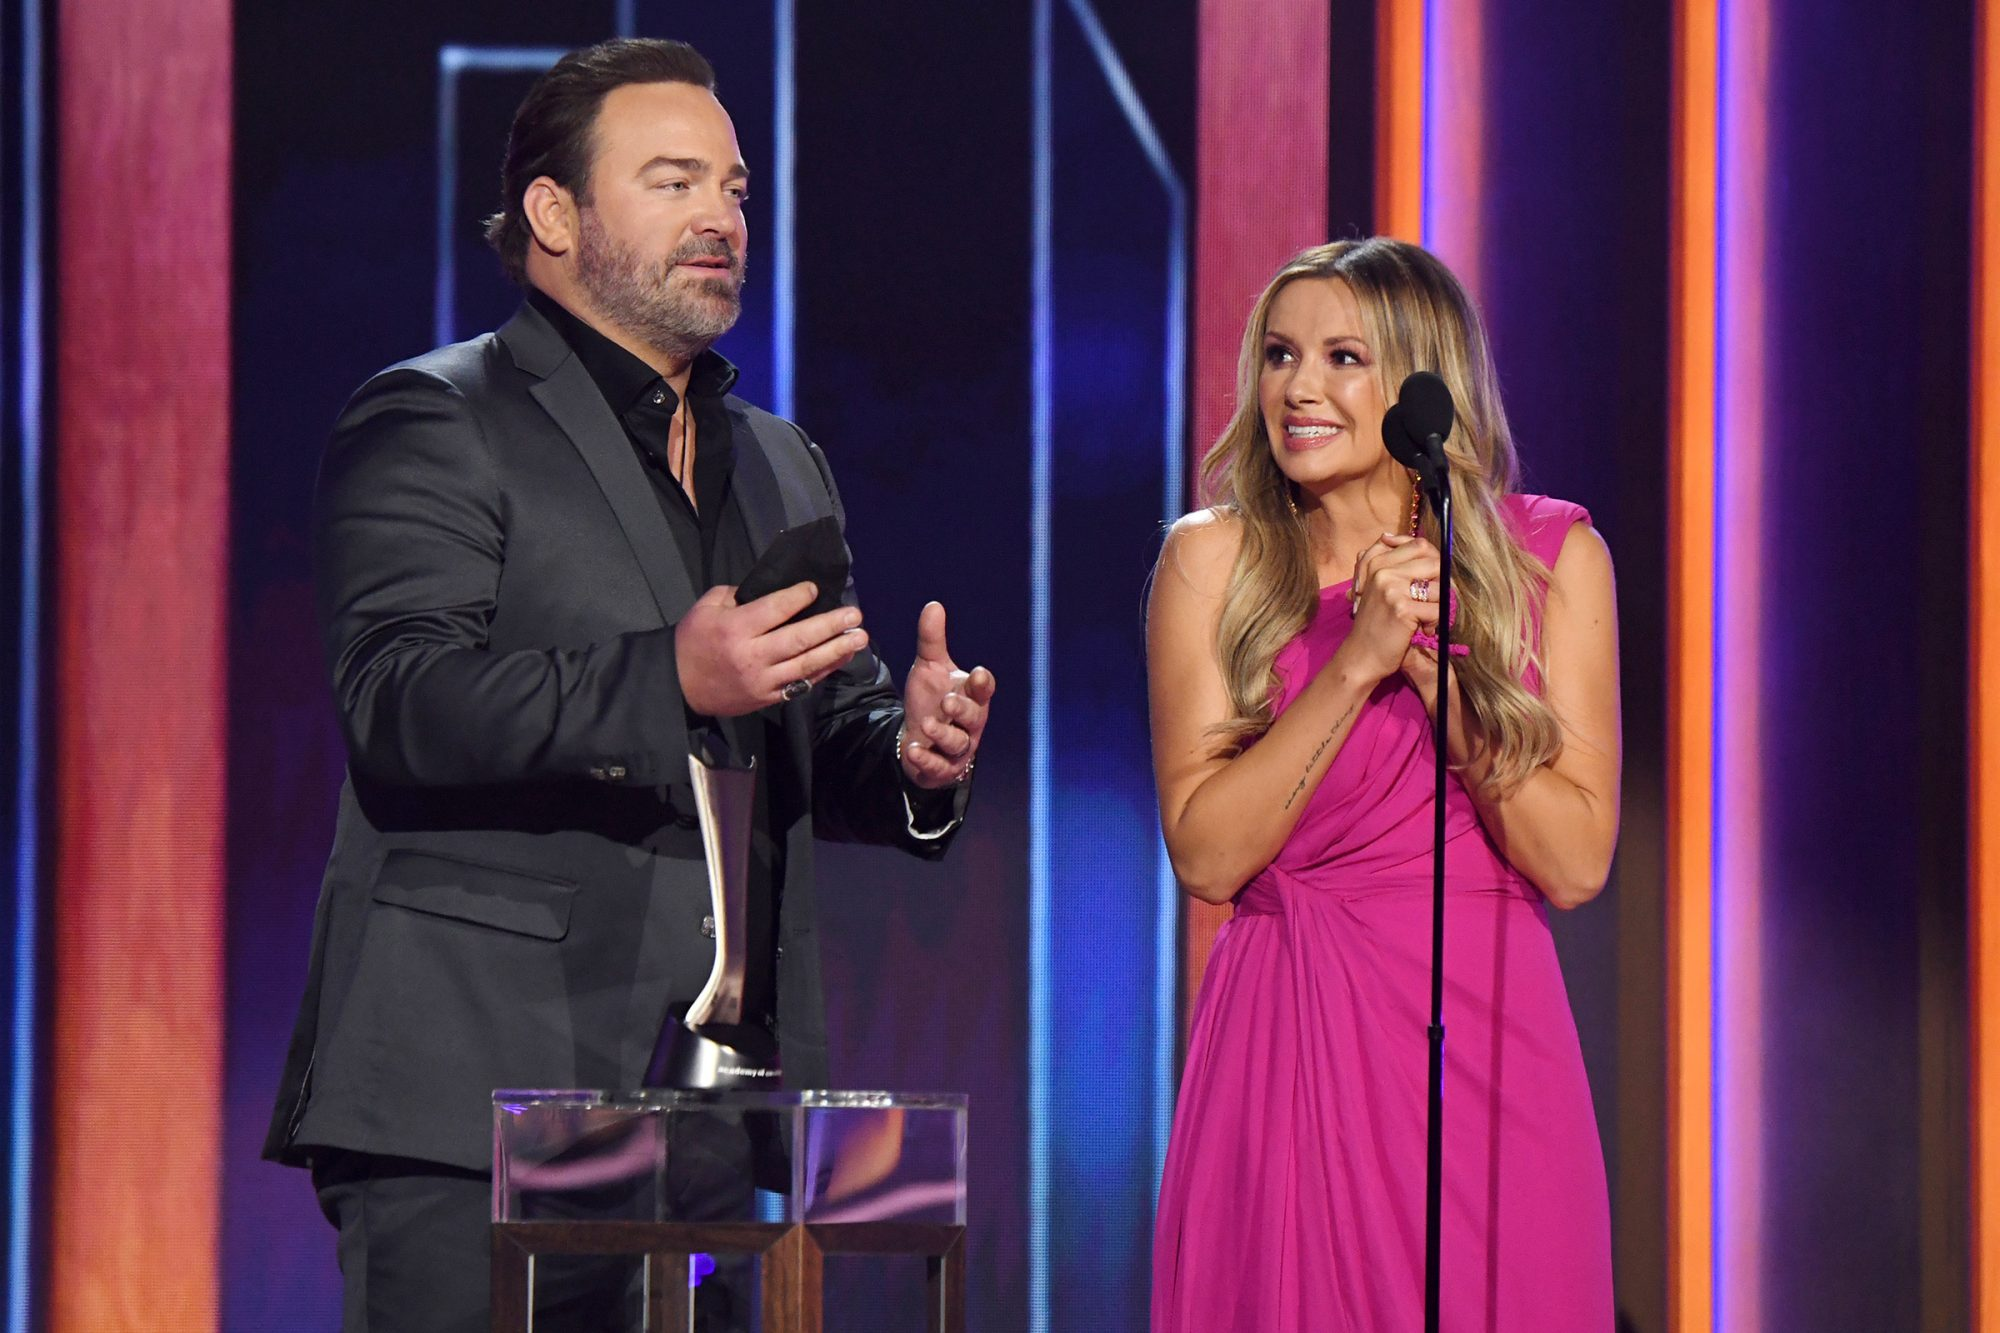 Lee Brice and Carly Pearce